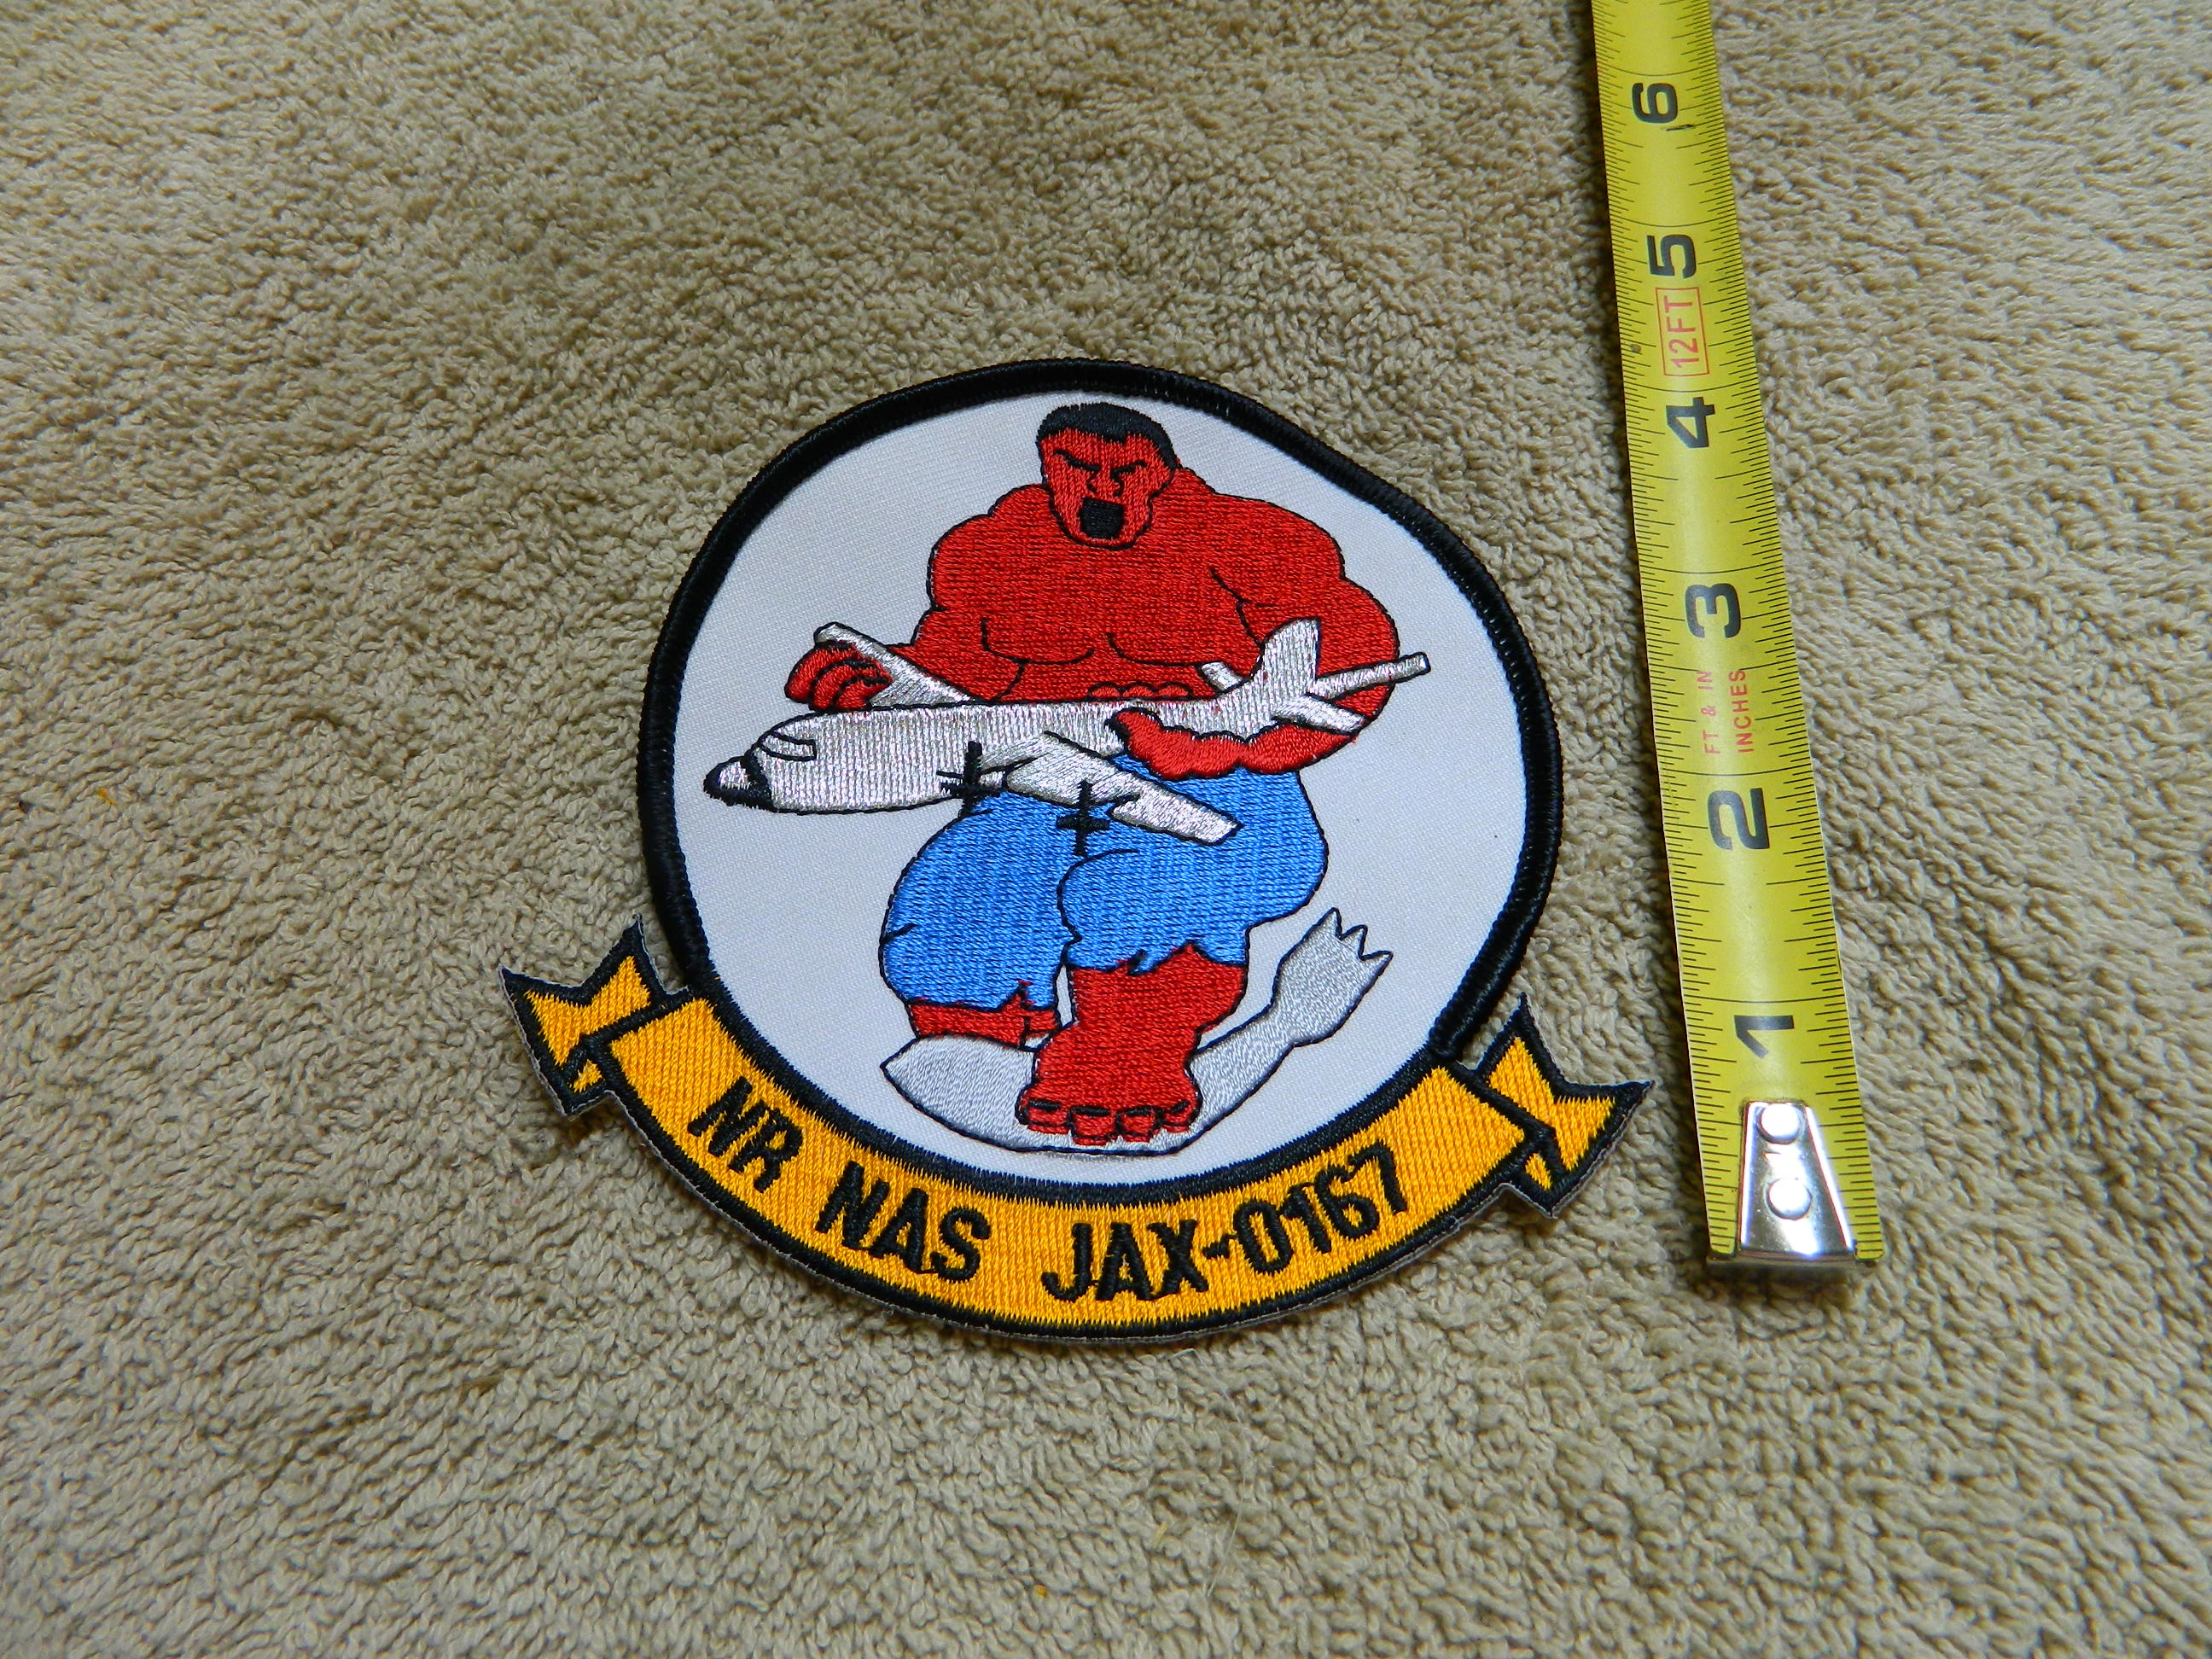 NR NAS JAX-0167 Color Patch